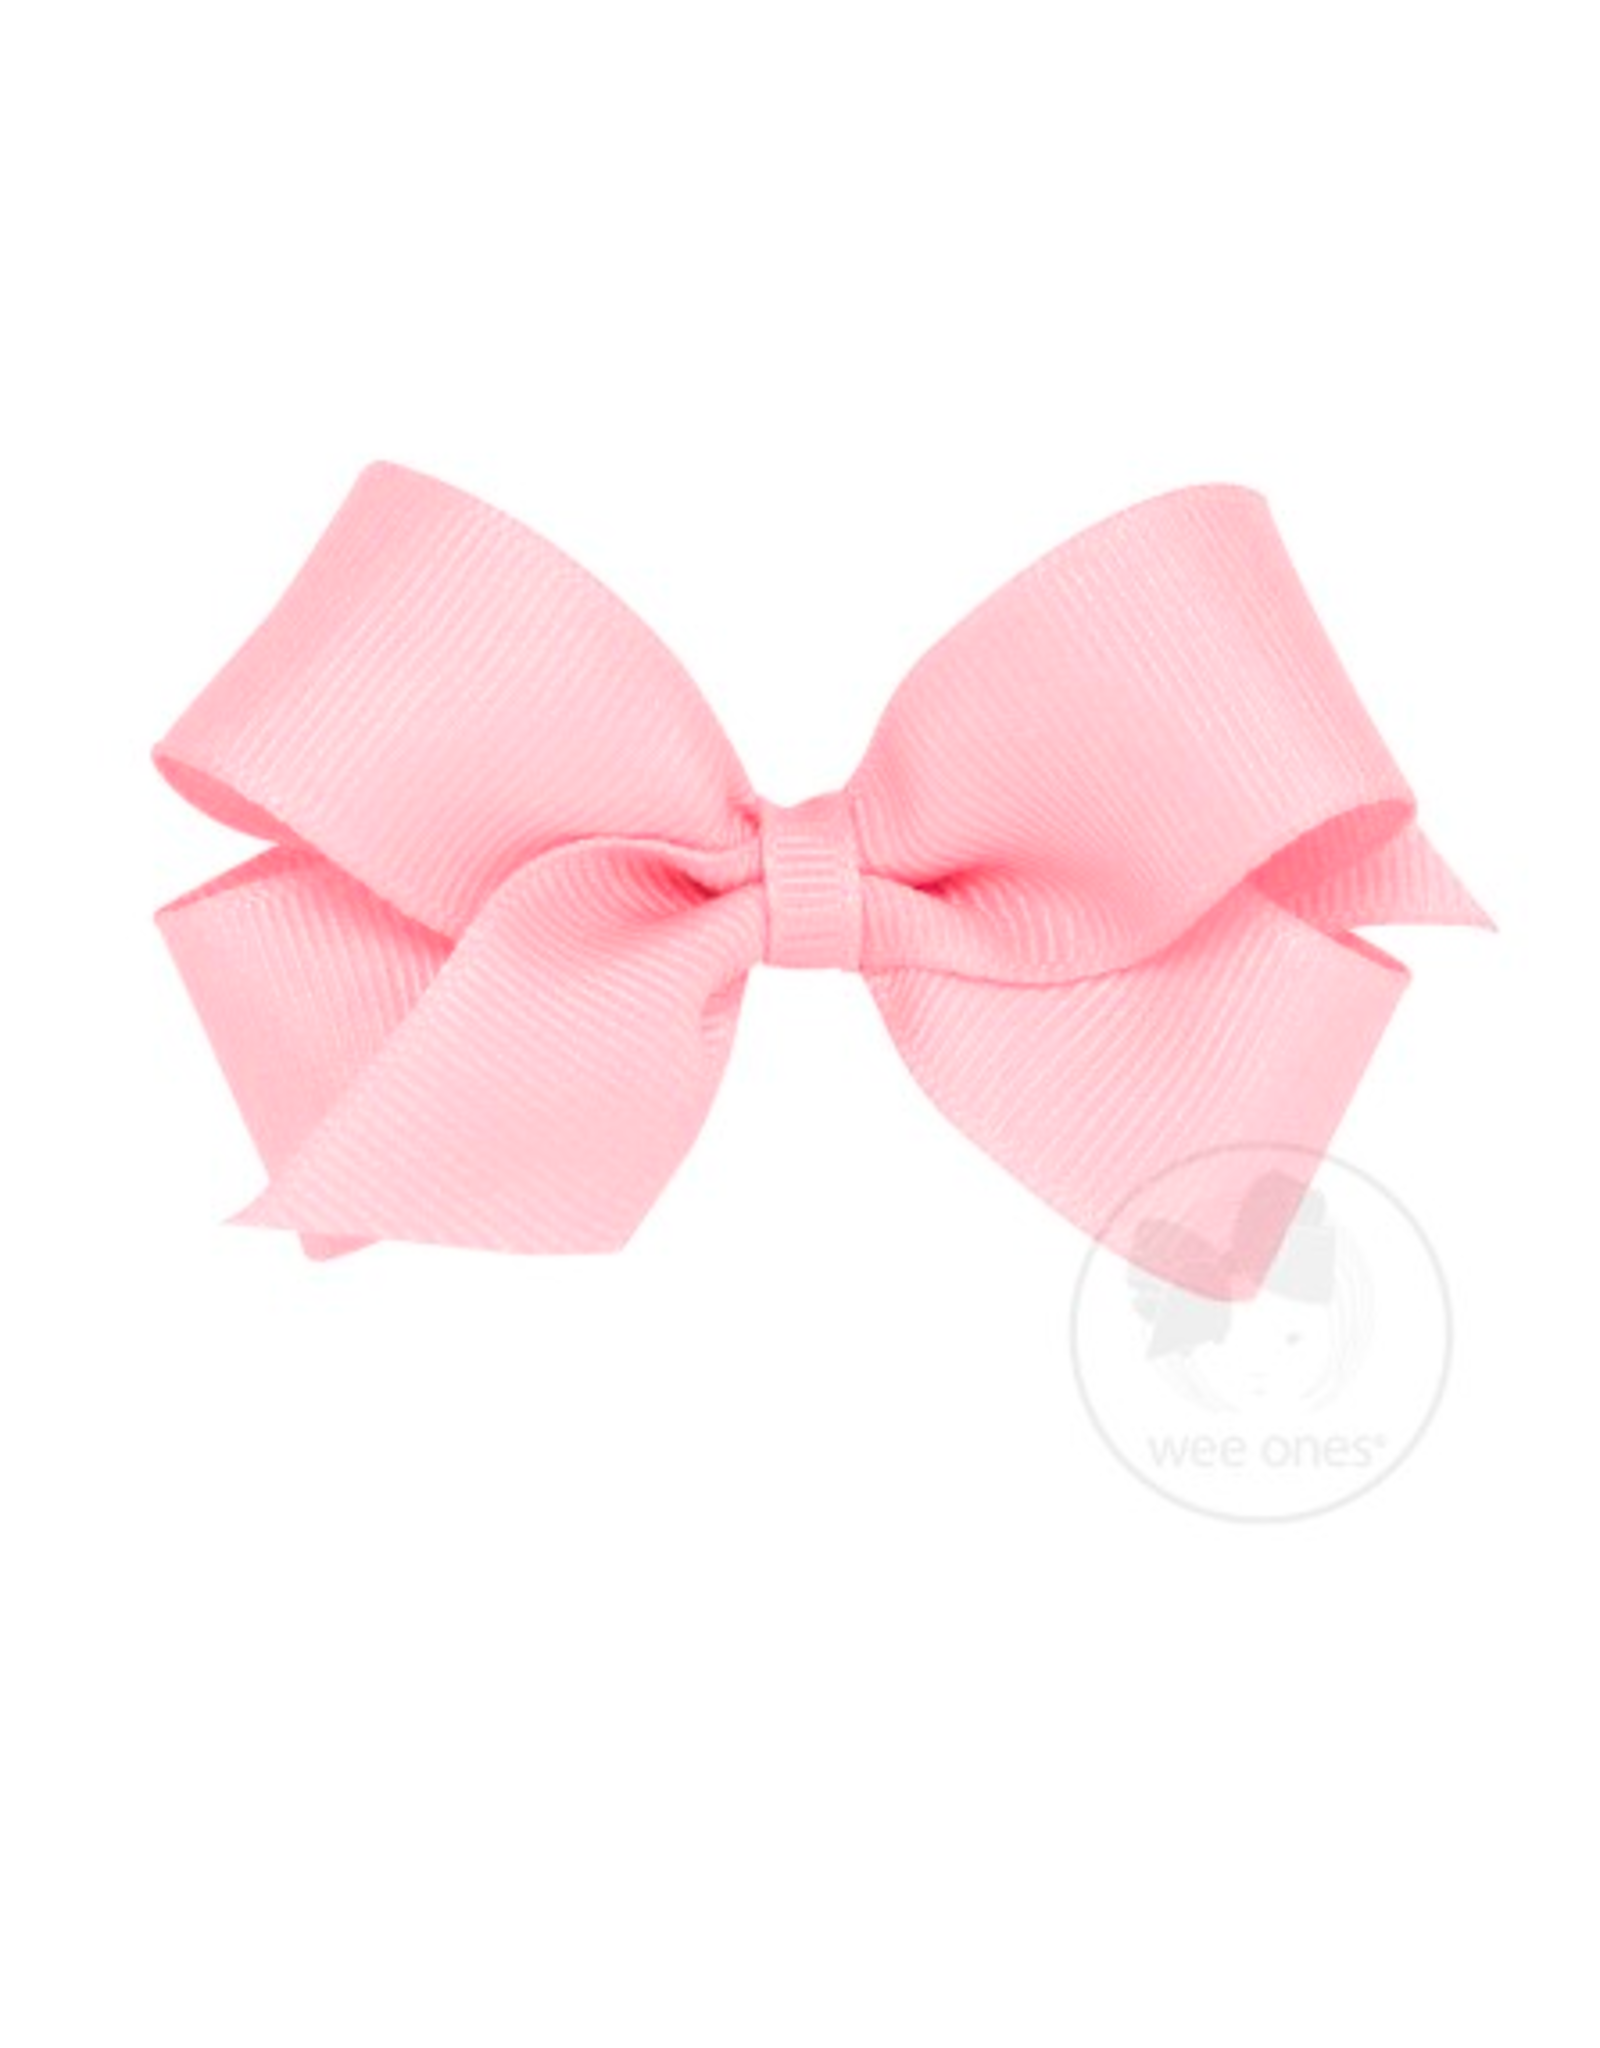 Wee Ones Wee Ones Mini Bow in Light Pink